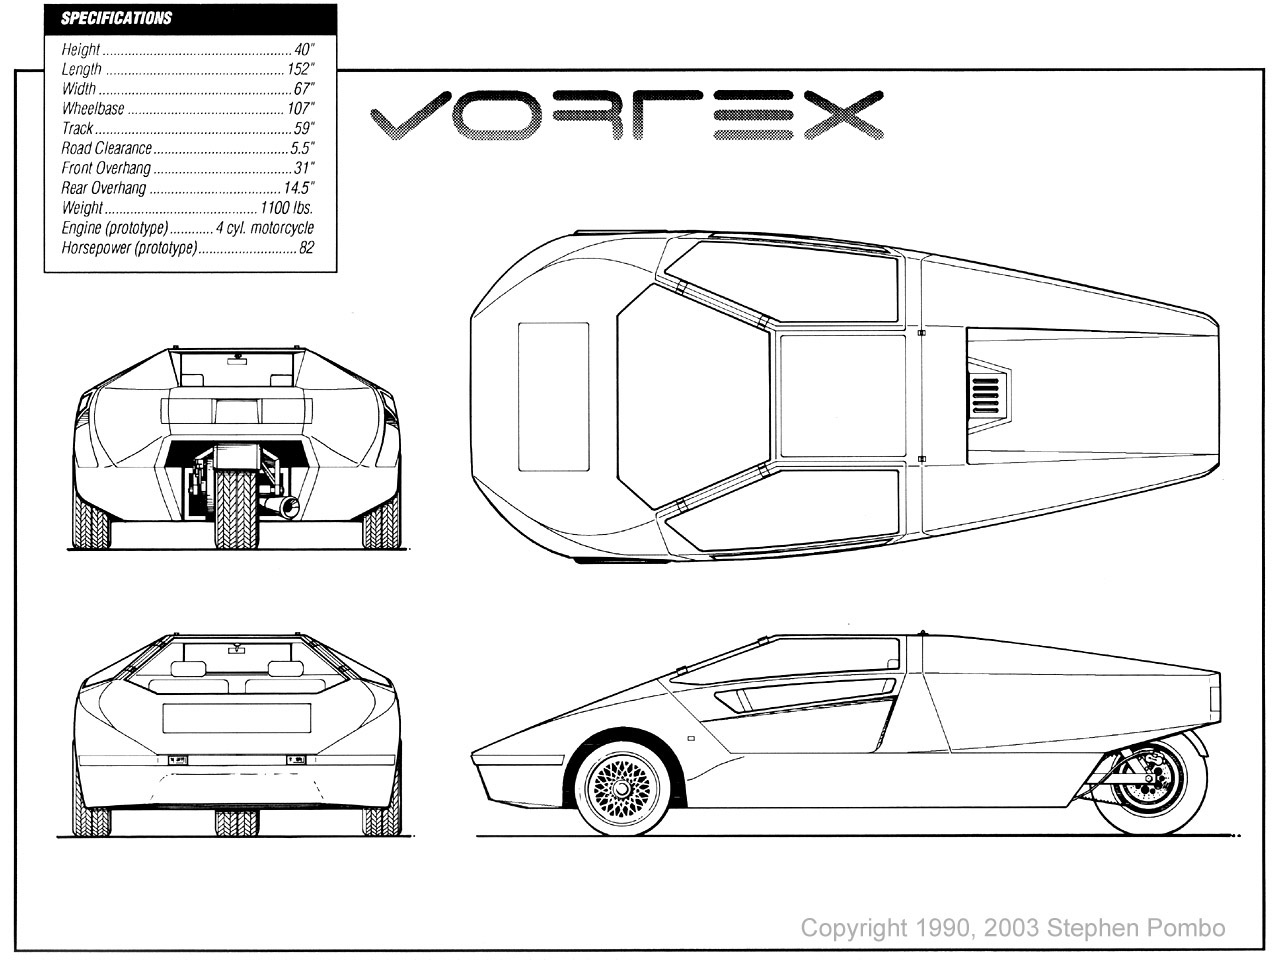 The Vortex Plans Page